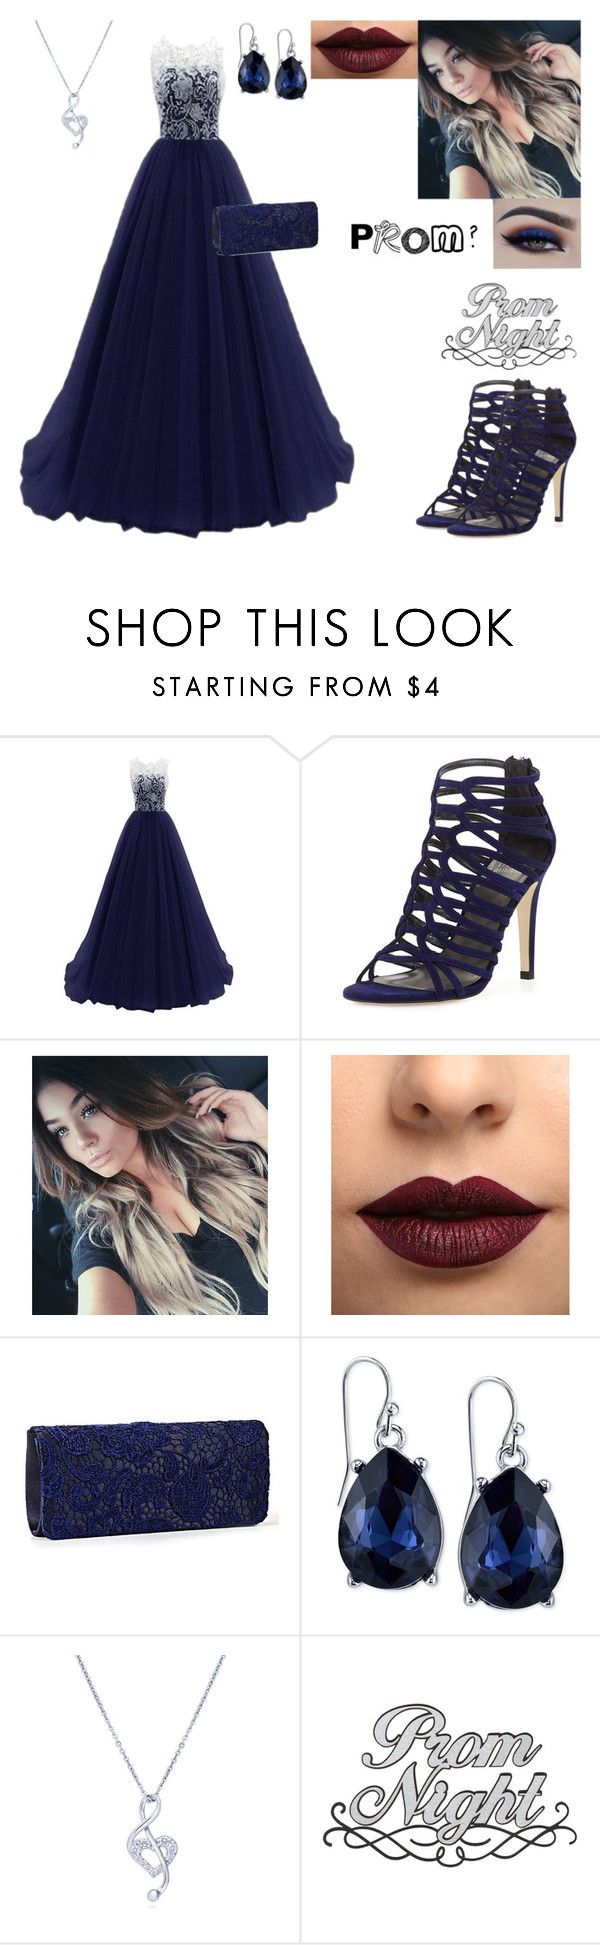 """""""prom?"""" by heather-gabrielle-tomlinson on Polyvore featuring Stuart Weitzman, Anastasia Beverly Hills, LASplash, 2028, BERRICLE and school"""